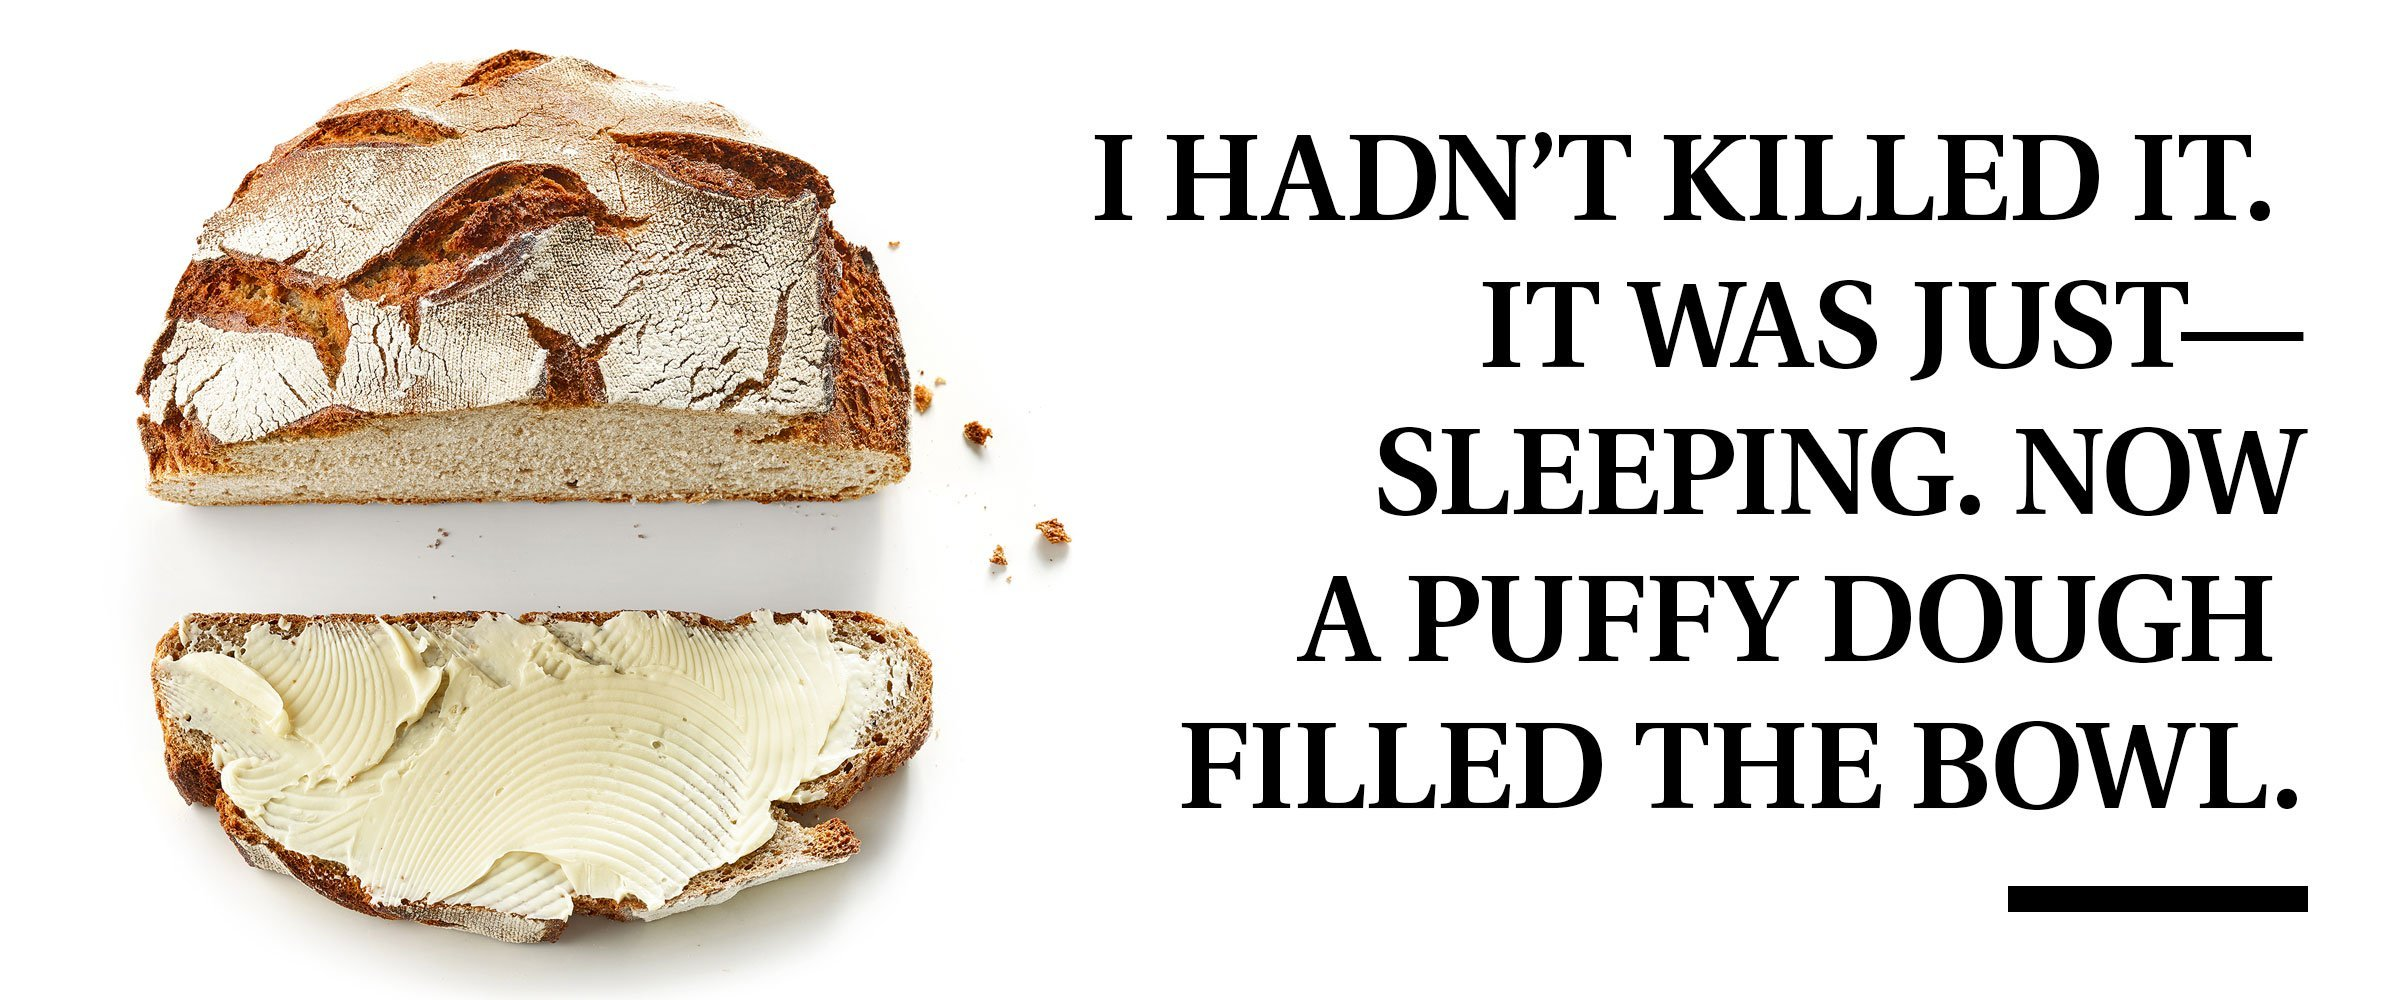 "bread with pull quote text: ""I hadn't killed it. It was just-sleeping. Now a puffy dough filled the bowl."""